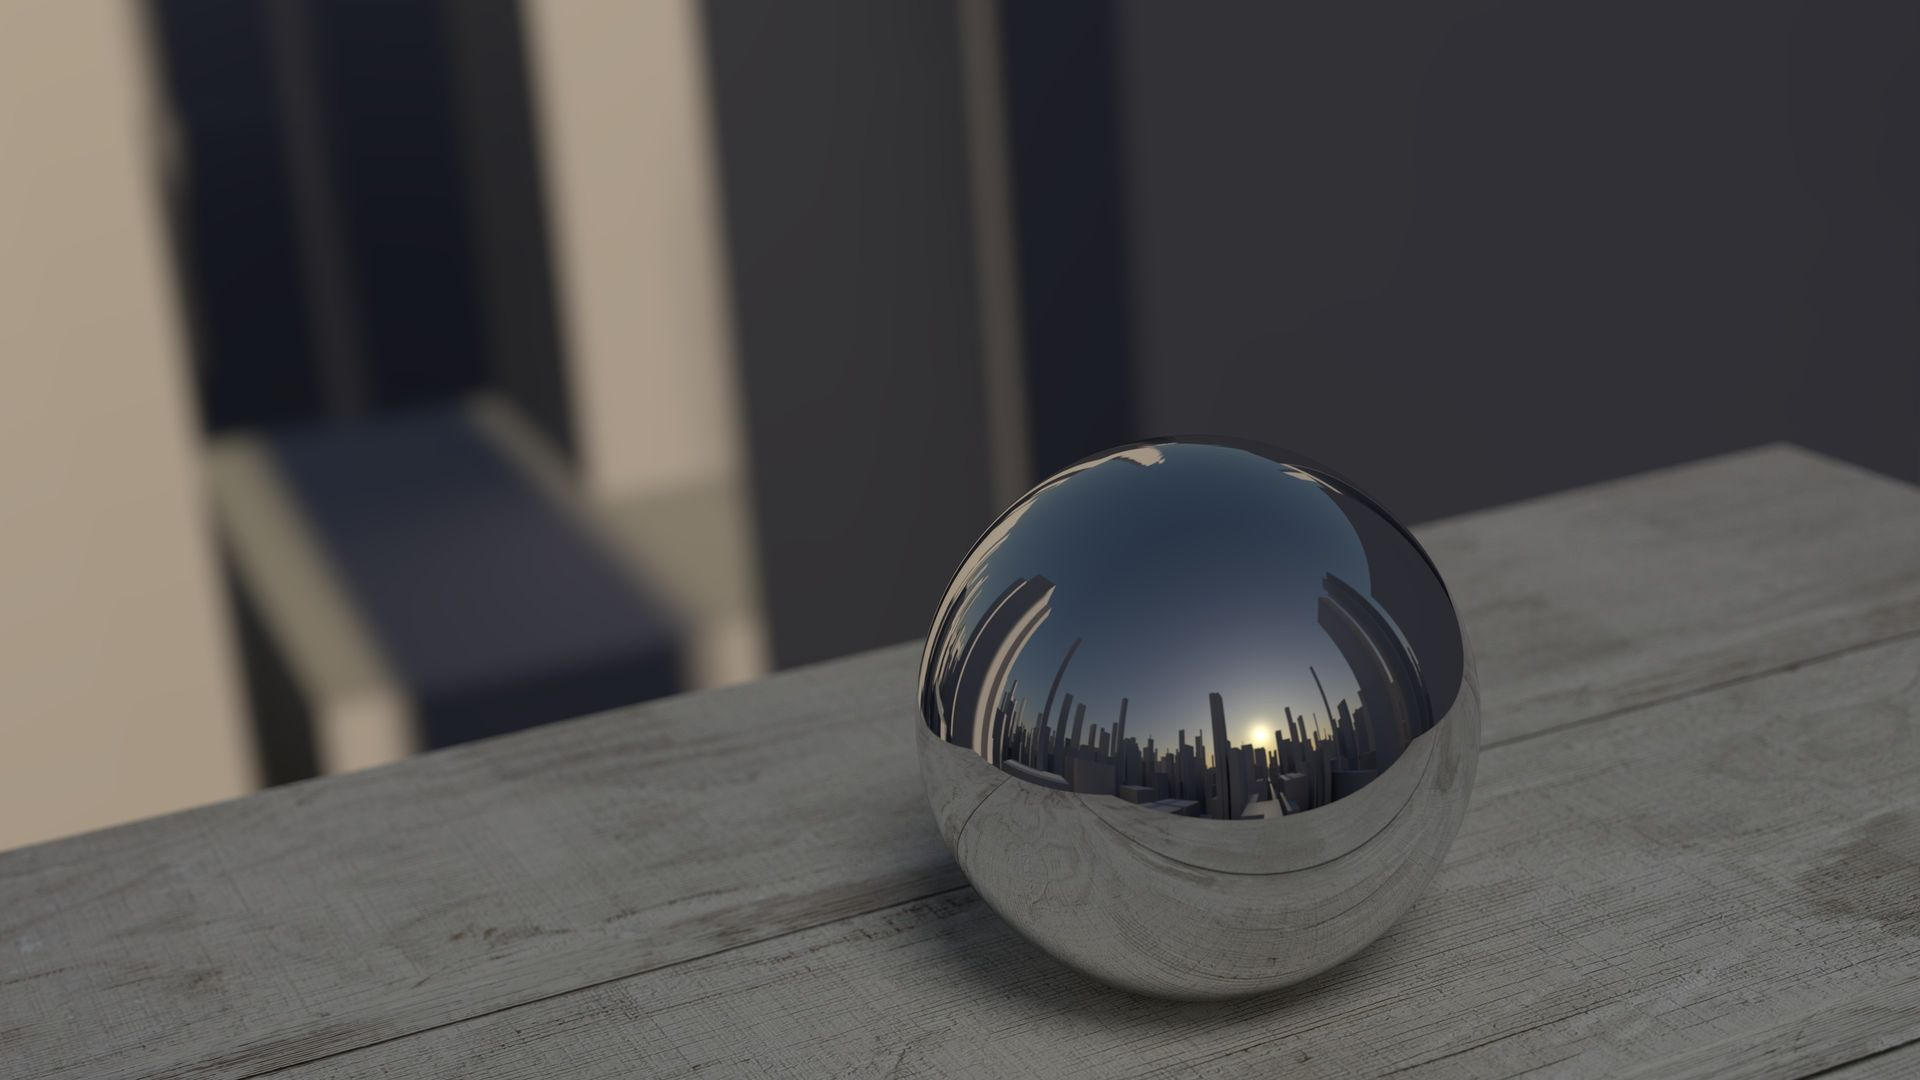 ball sphere mirror reflection city